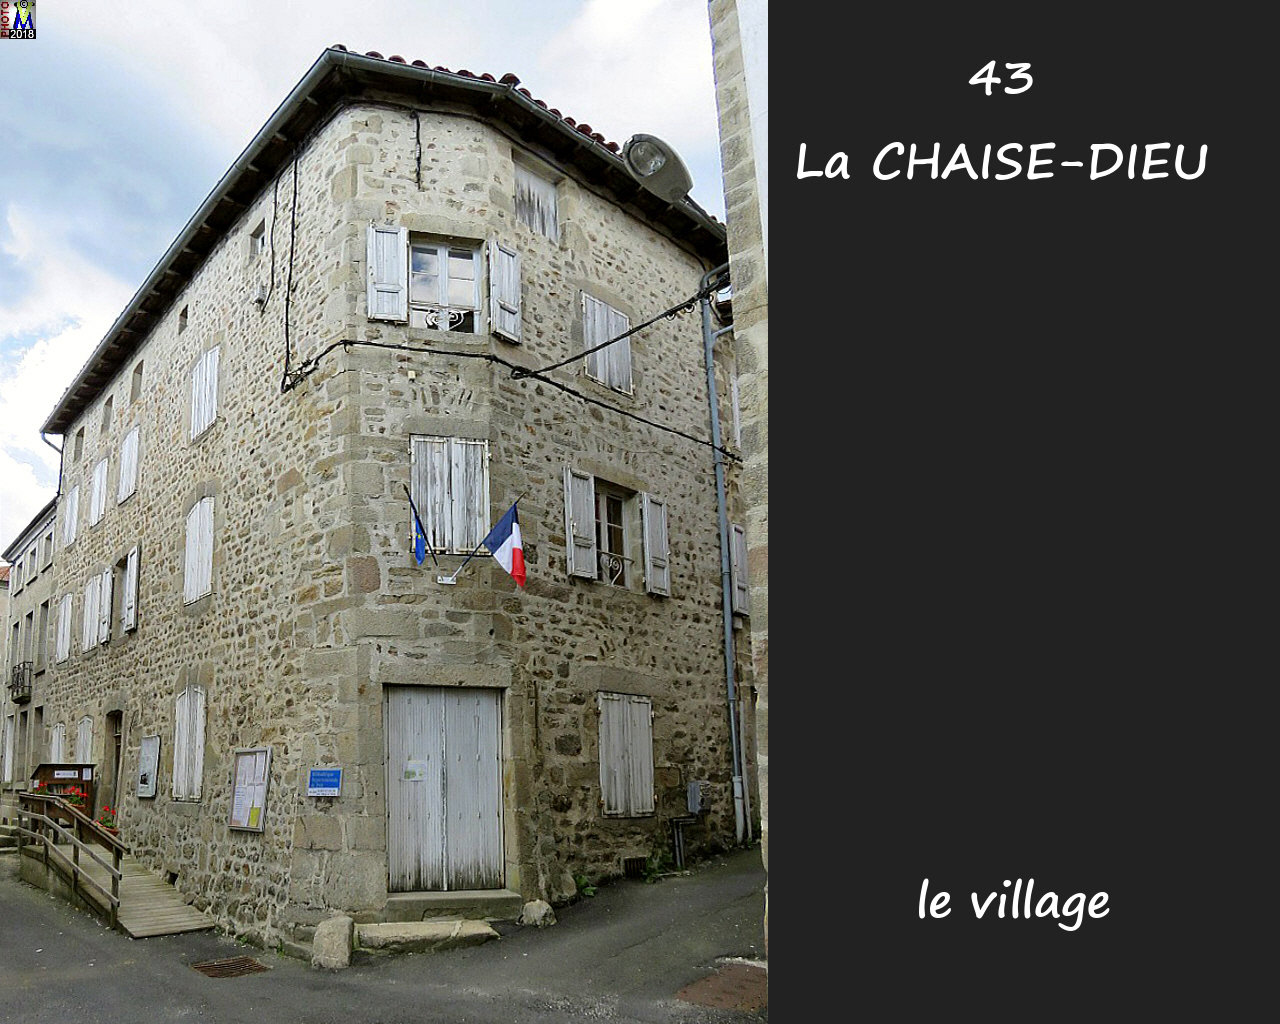 43CHAISE-DIEU_village_142.jpg